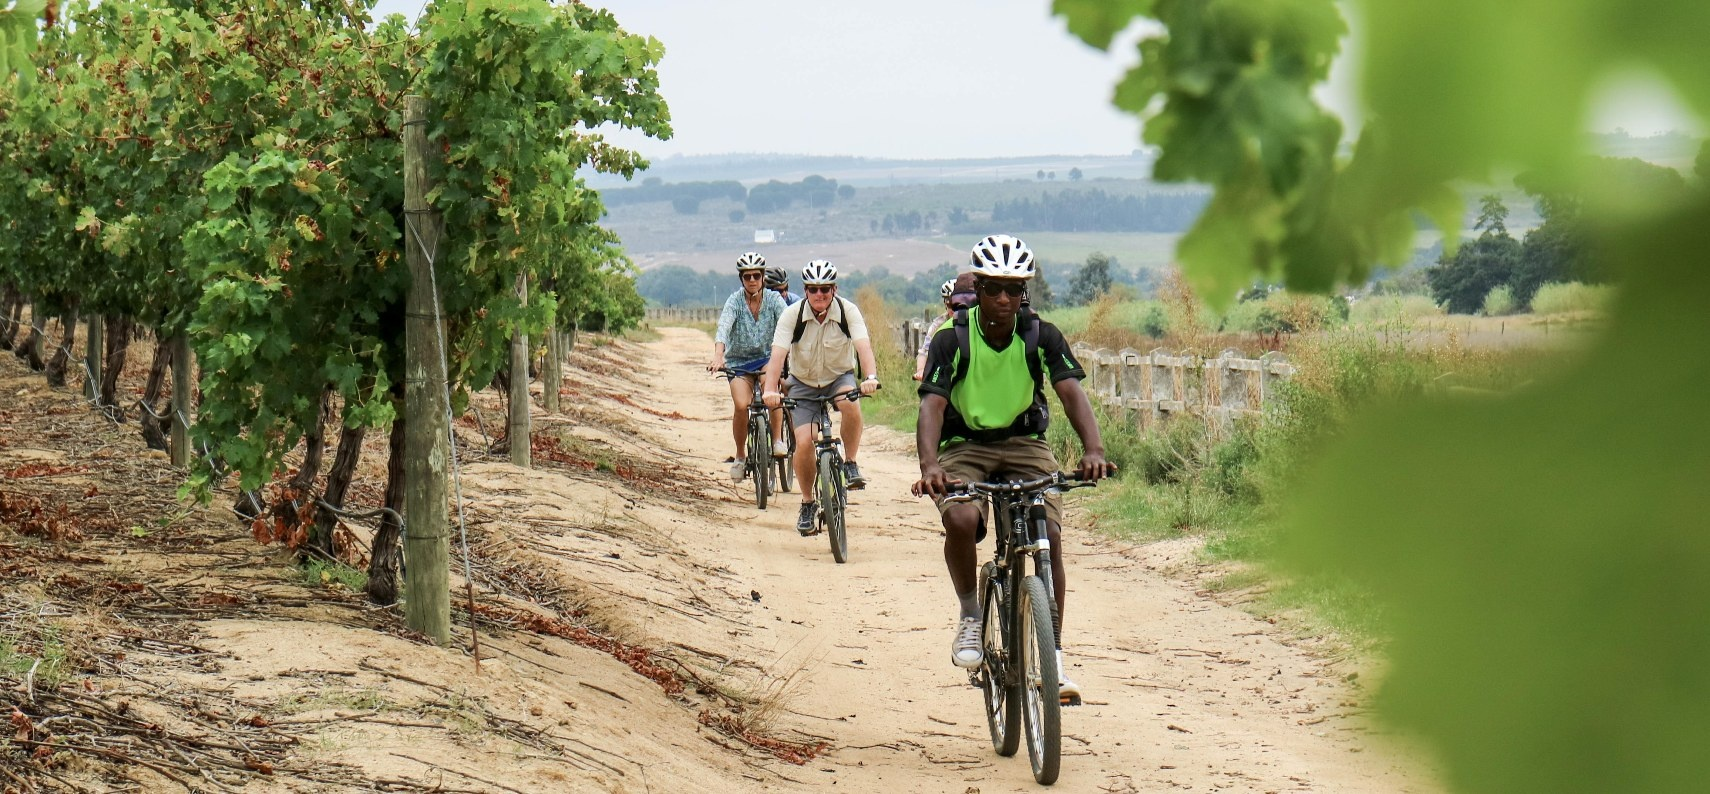 Premium Franschhoek Winelands Tour for 2-7